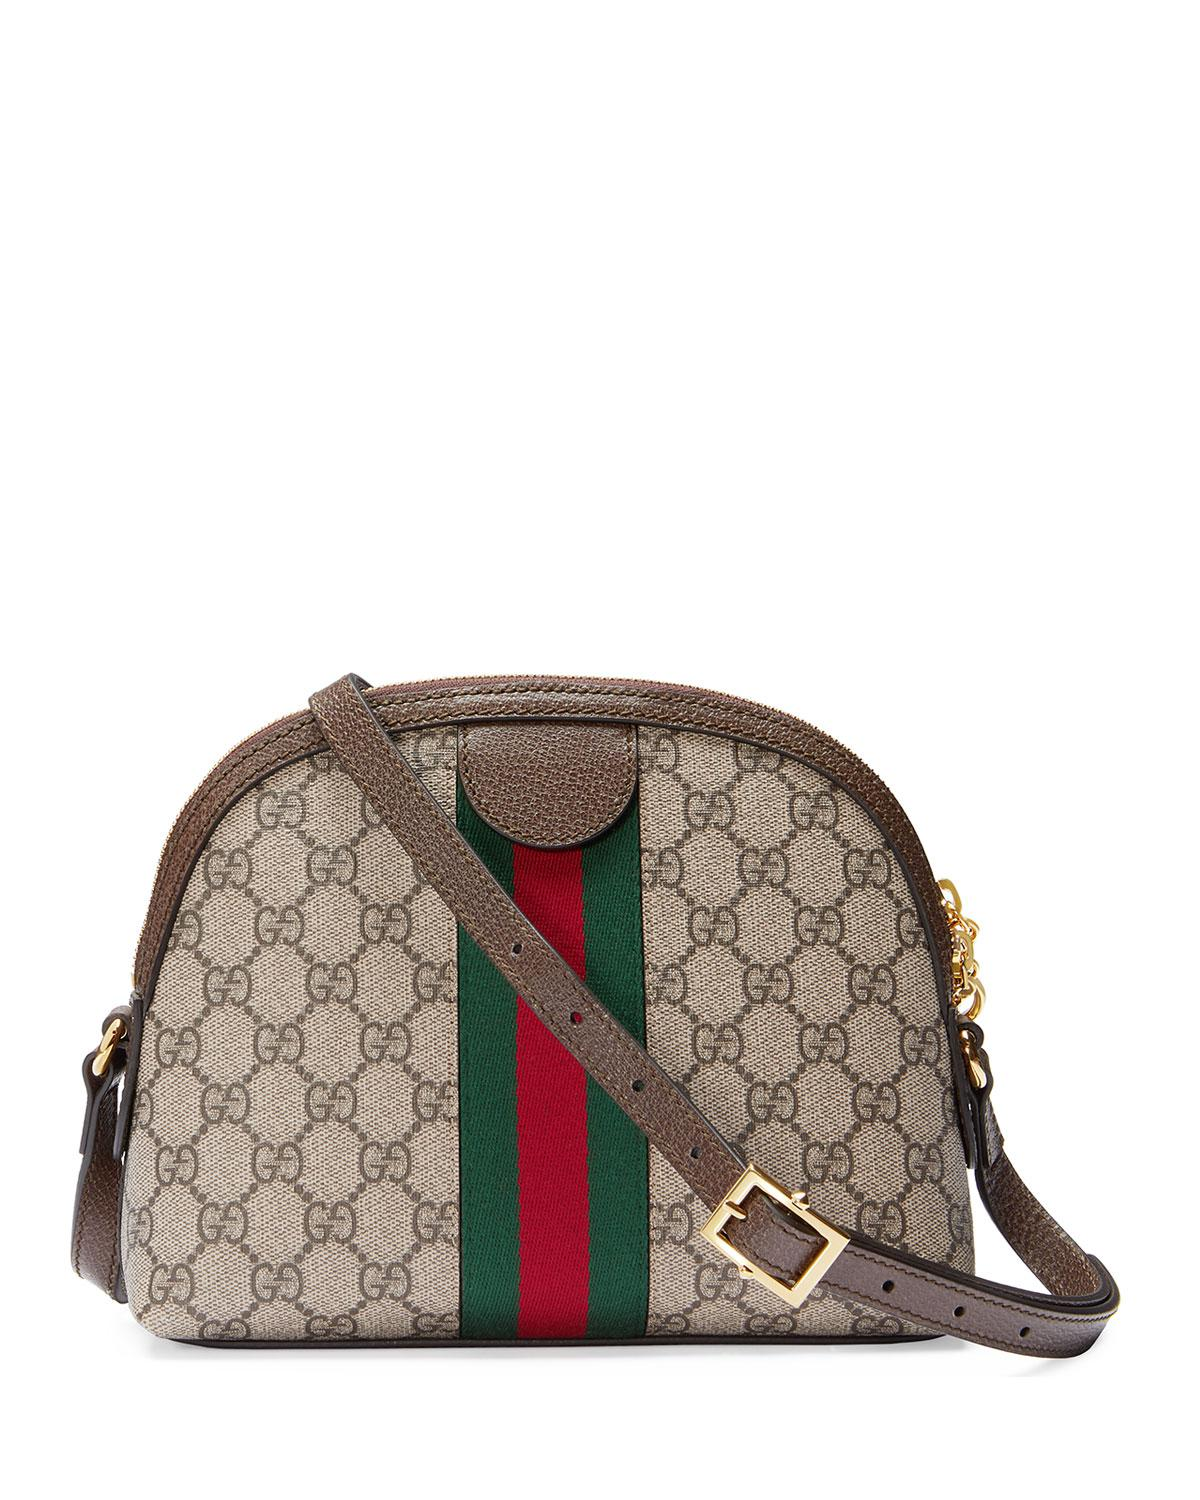 71811f1305c Gucci - Natural Ophidia Textured Leather-trimmed Printed Coated-canvas  Shoulder Bag - Lyst. View fullscreen